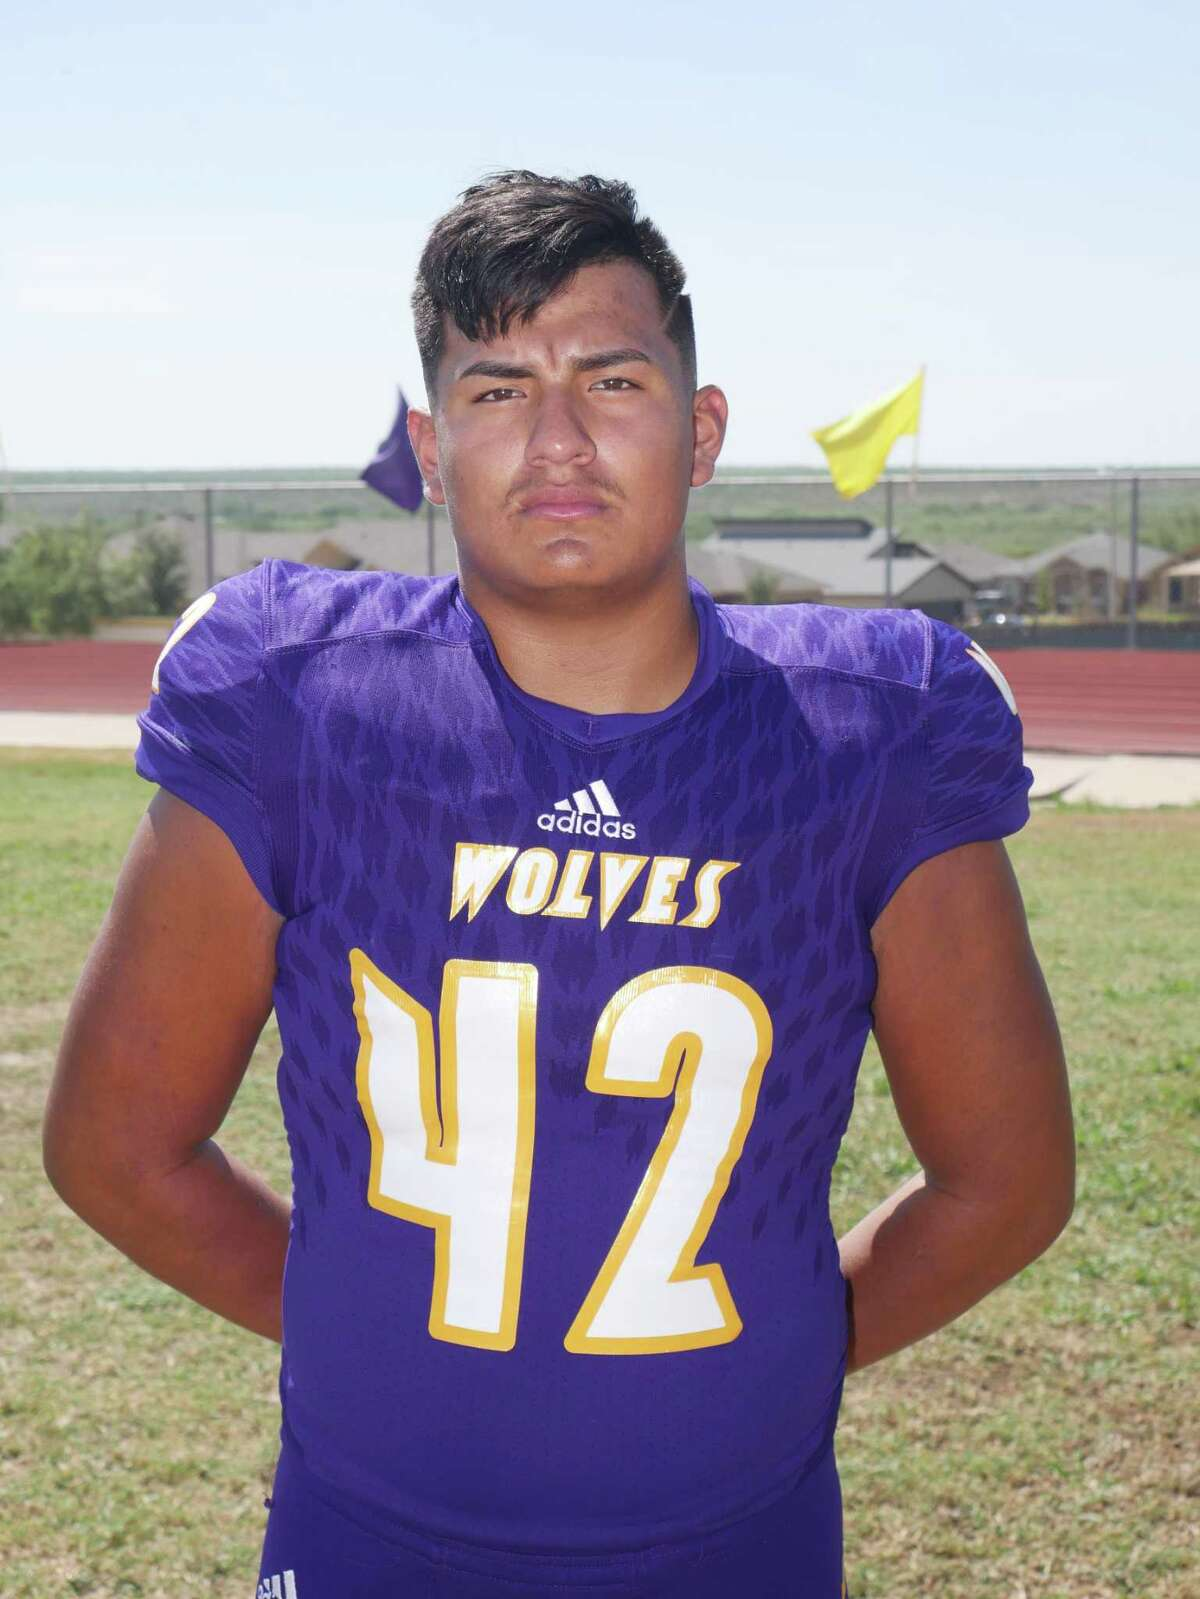 Senior MIKE linebacker Cristian Ramos has been sidelined to begin the season because of a sprained elbow.